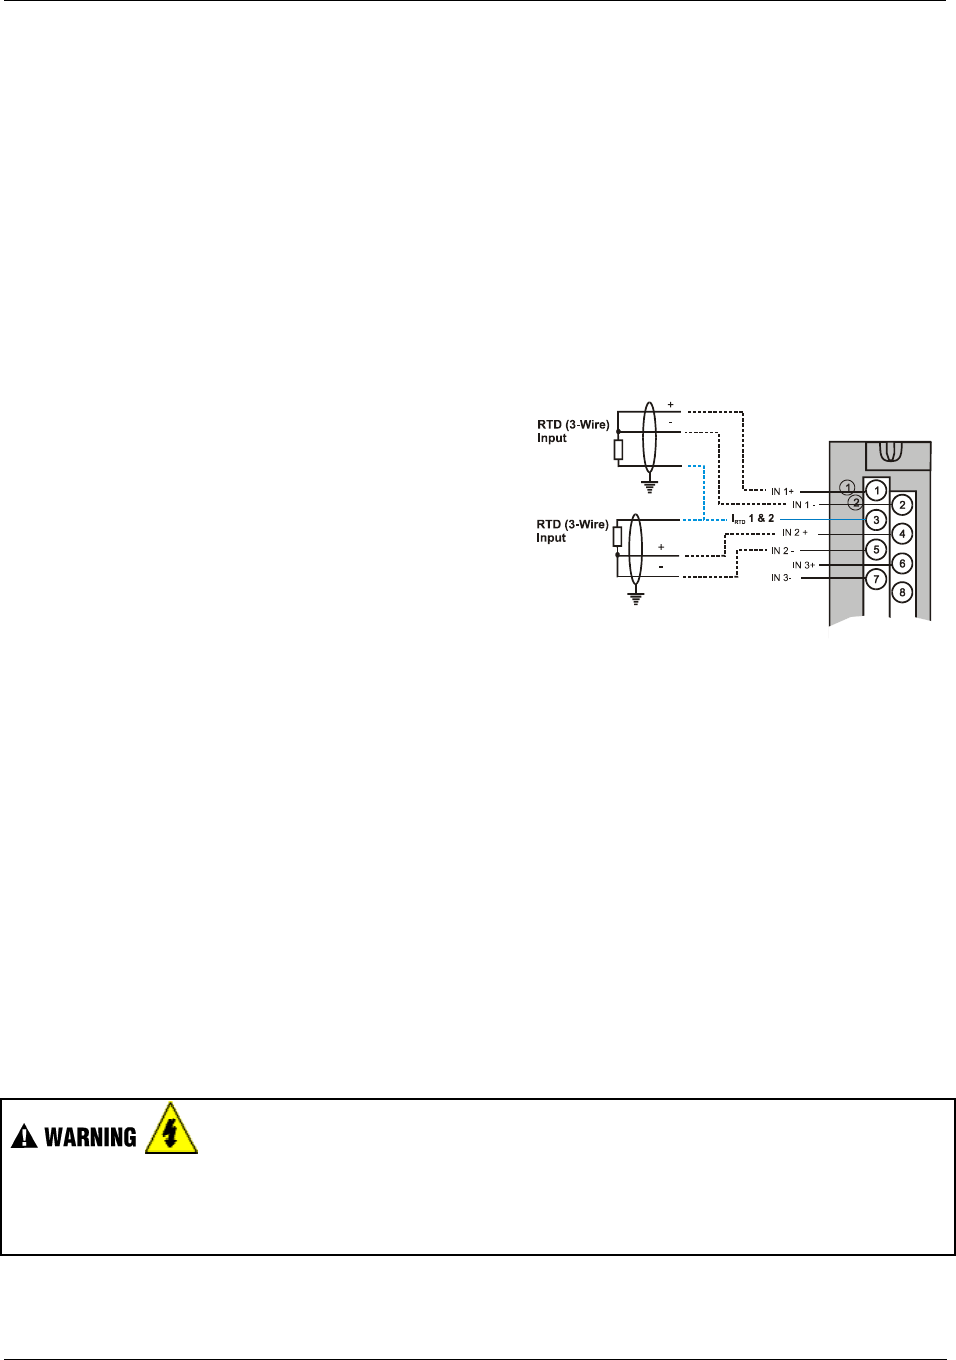 Honeywell Hc900 Users Manual Controllers Polarity 3 Wire Rtd Wiring Diagram I O Module Installation And Terminal Block Diagrams